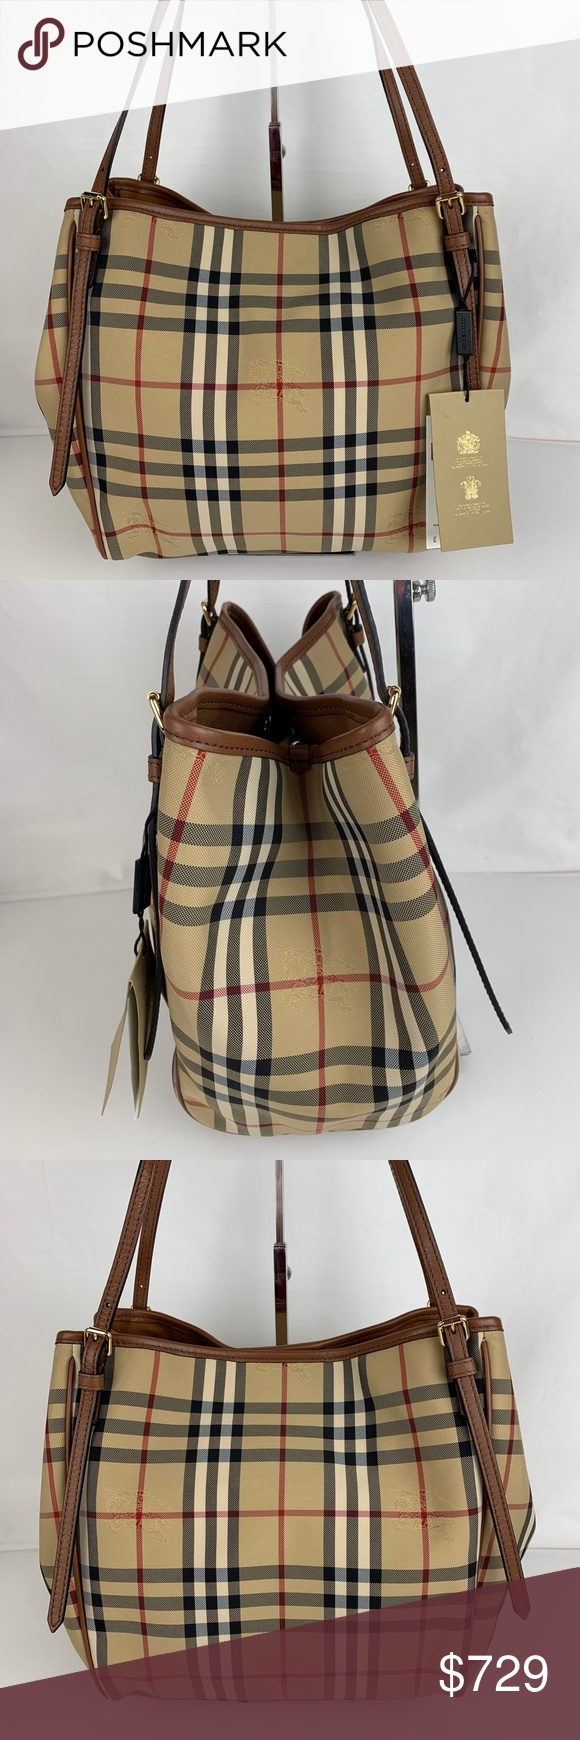 4b7159873aba Burberry Horseferry Small Canter Tote 4028897 Authentic Burberry style  39393771. New